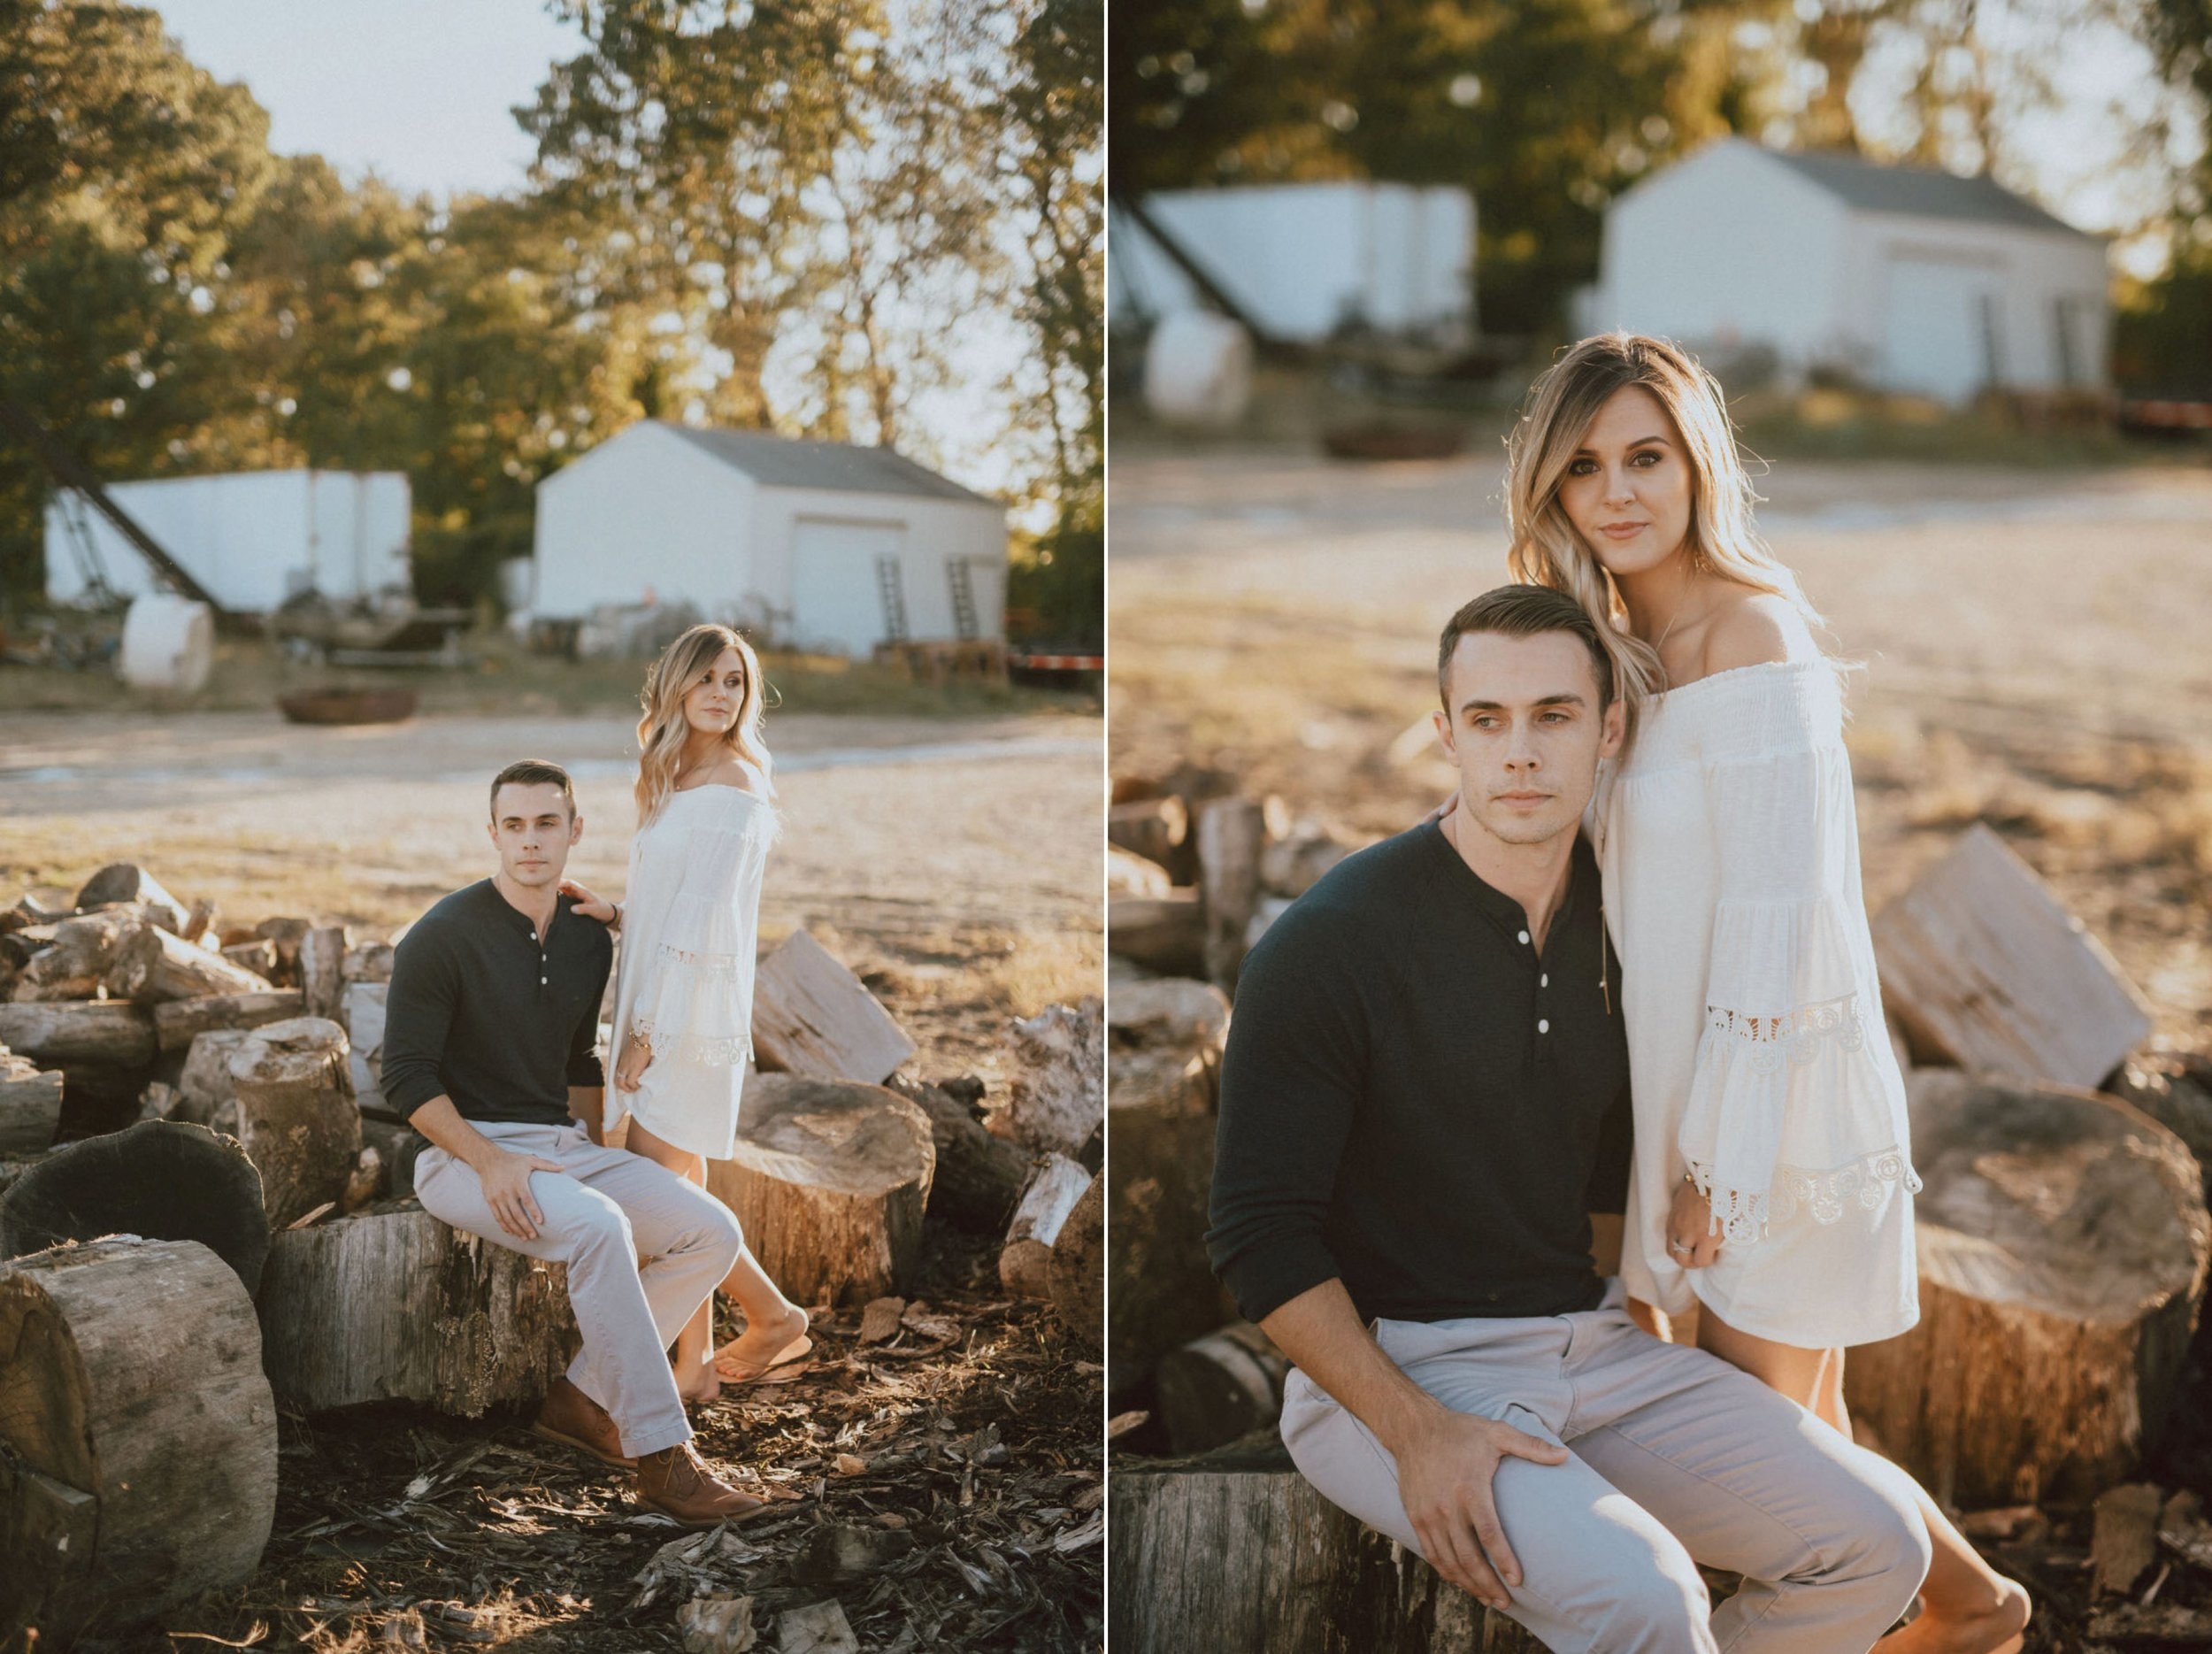 elkton-maryland-engagement-session-9.jpg